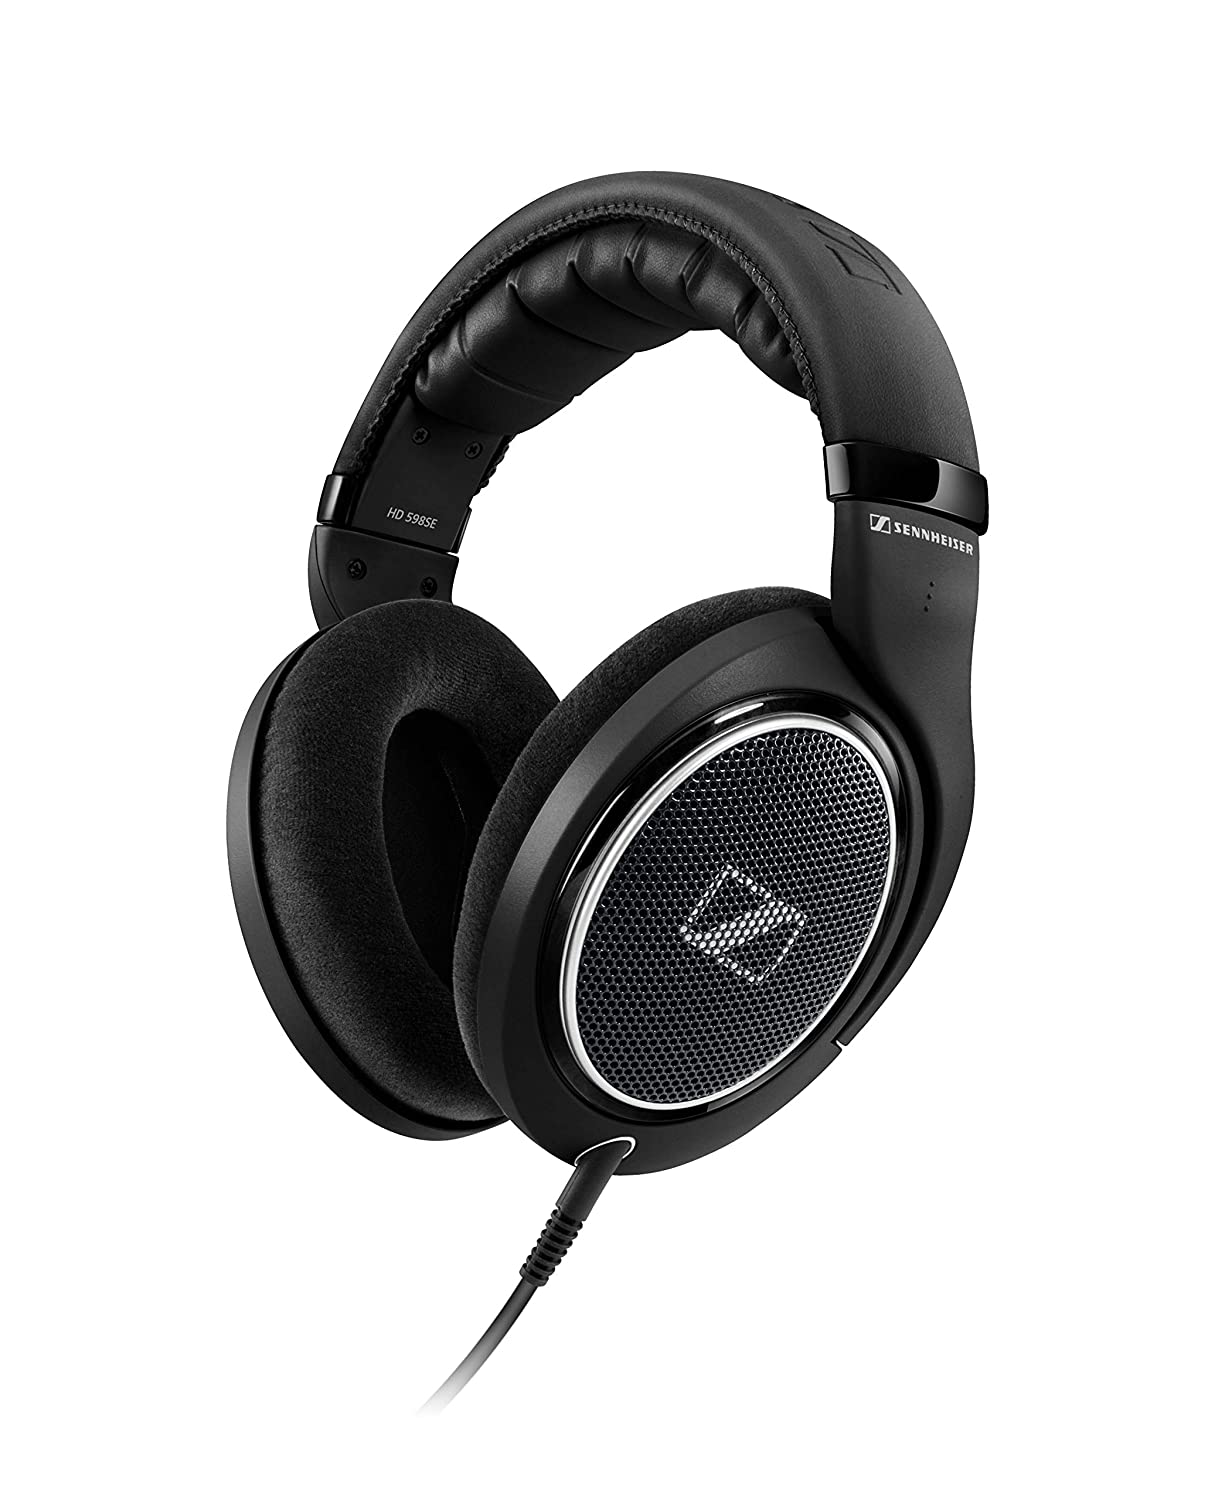 Sennheiser HD 598 Special Edition Over-Ear Headphones